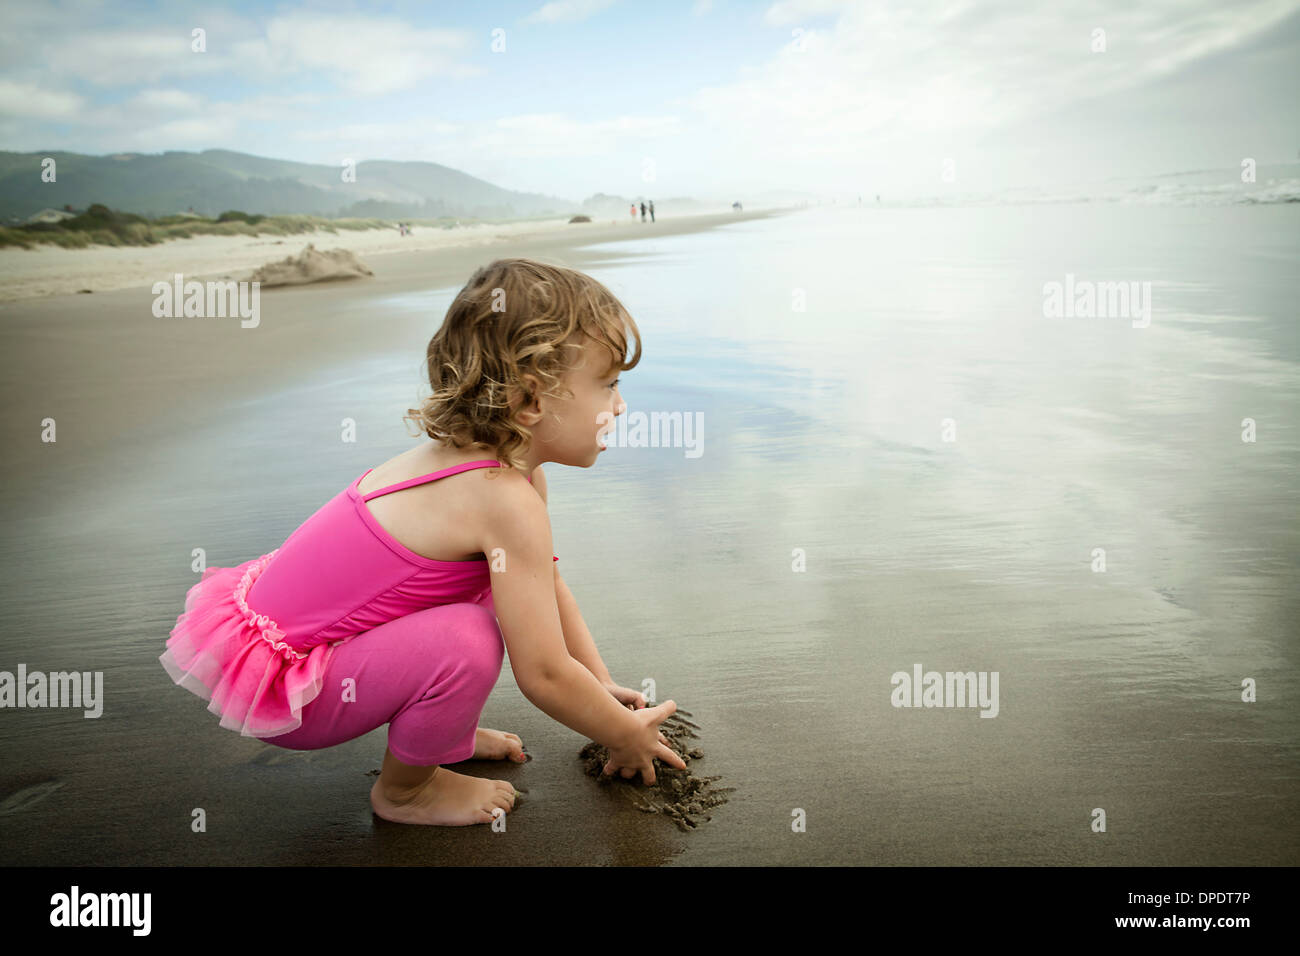 Portrait of female toddler playing in sand - Stock Image